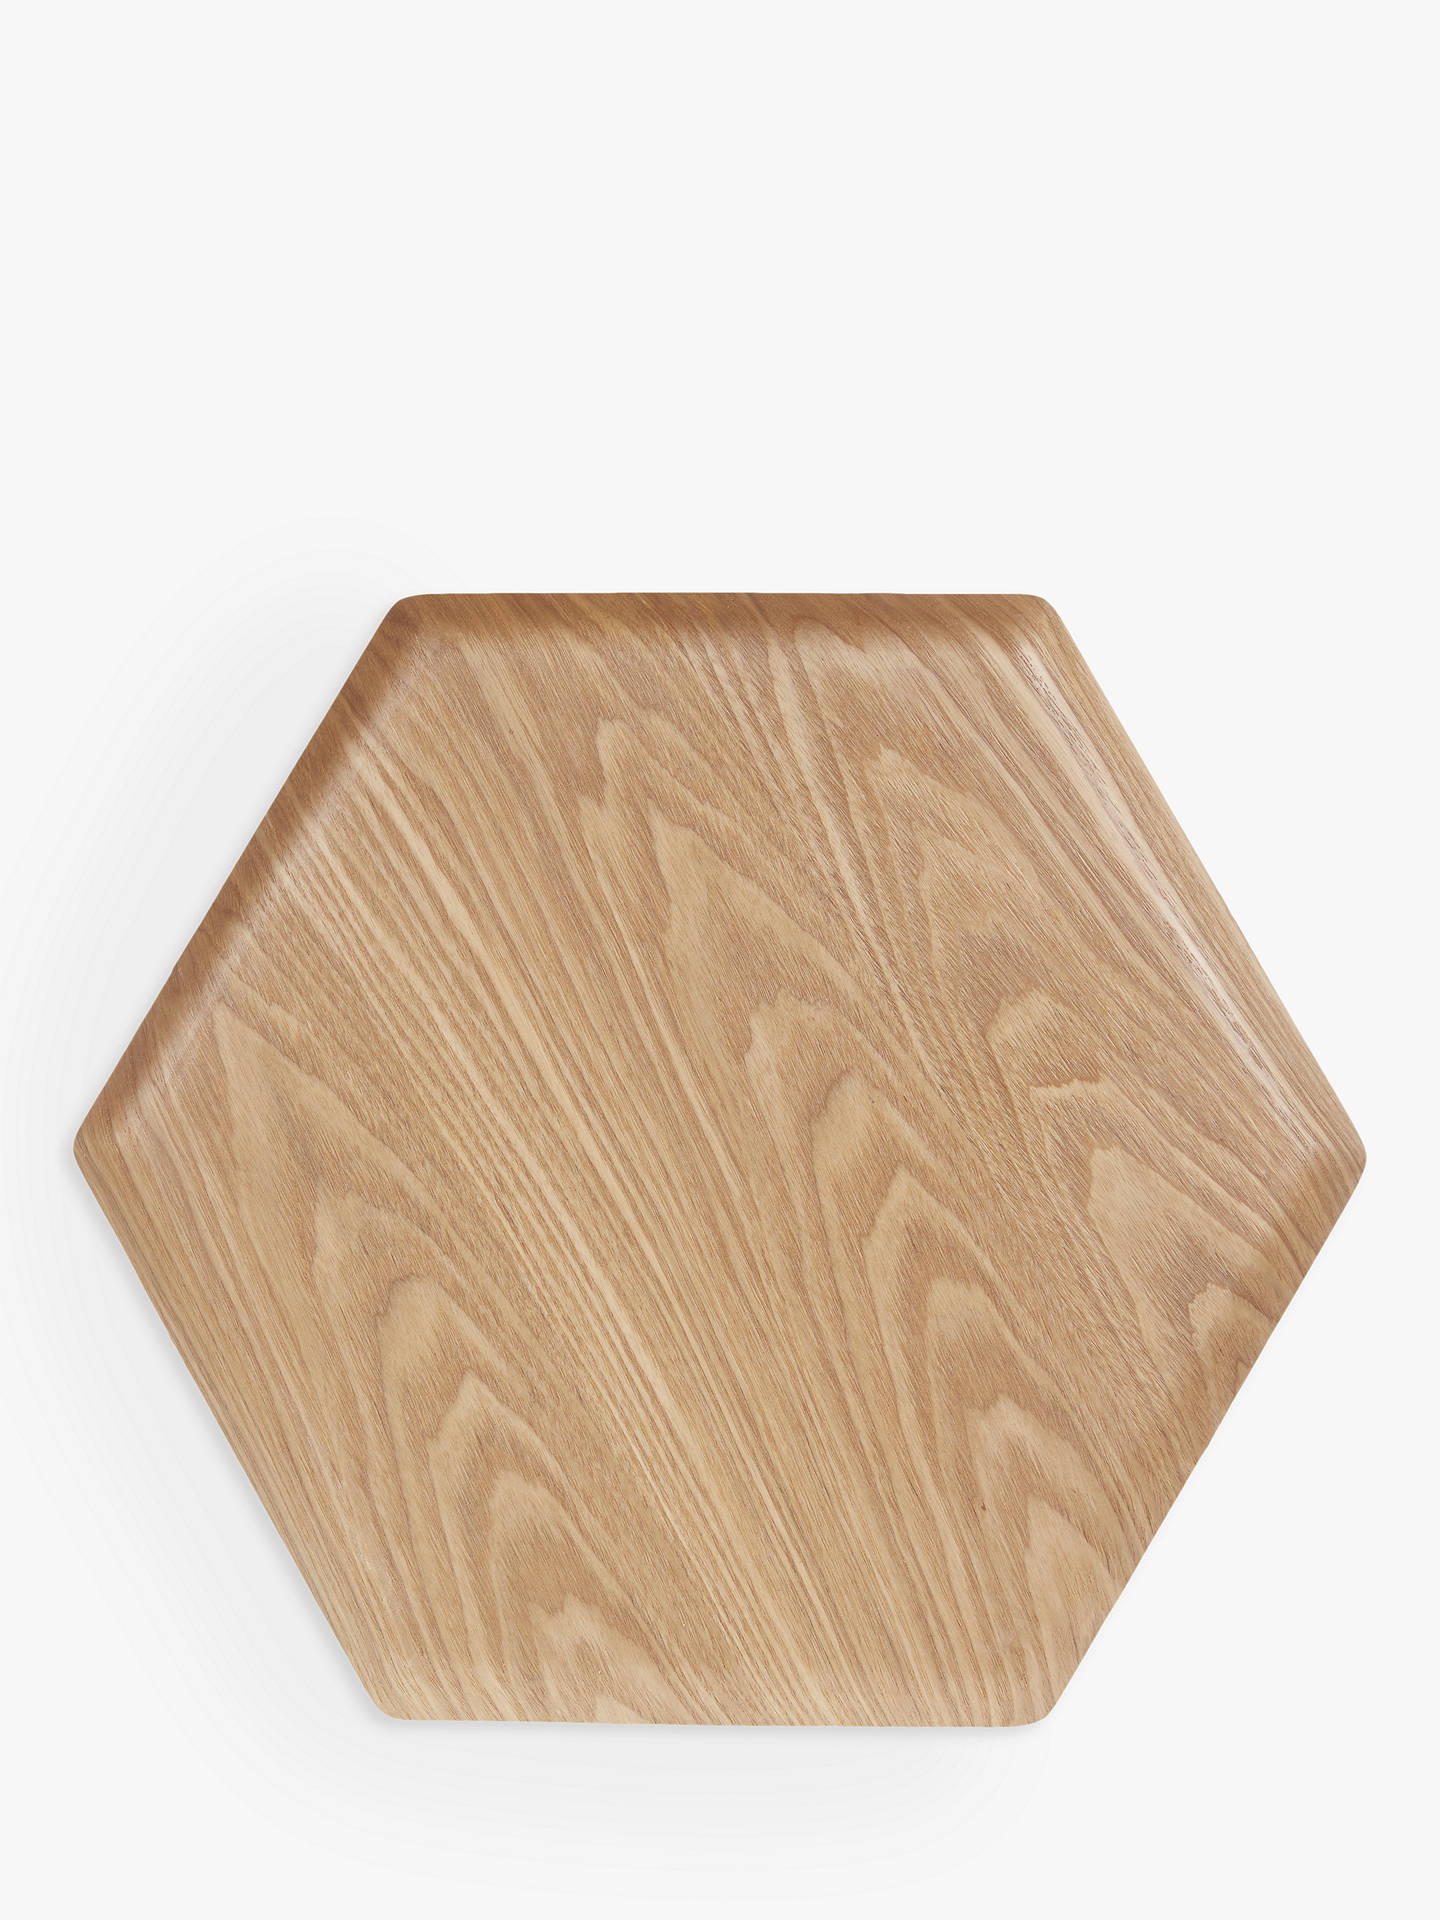 94d9581e1ce00 House by John Lewis Hexagonal Wood Tray